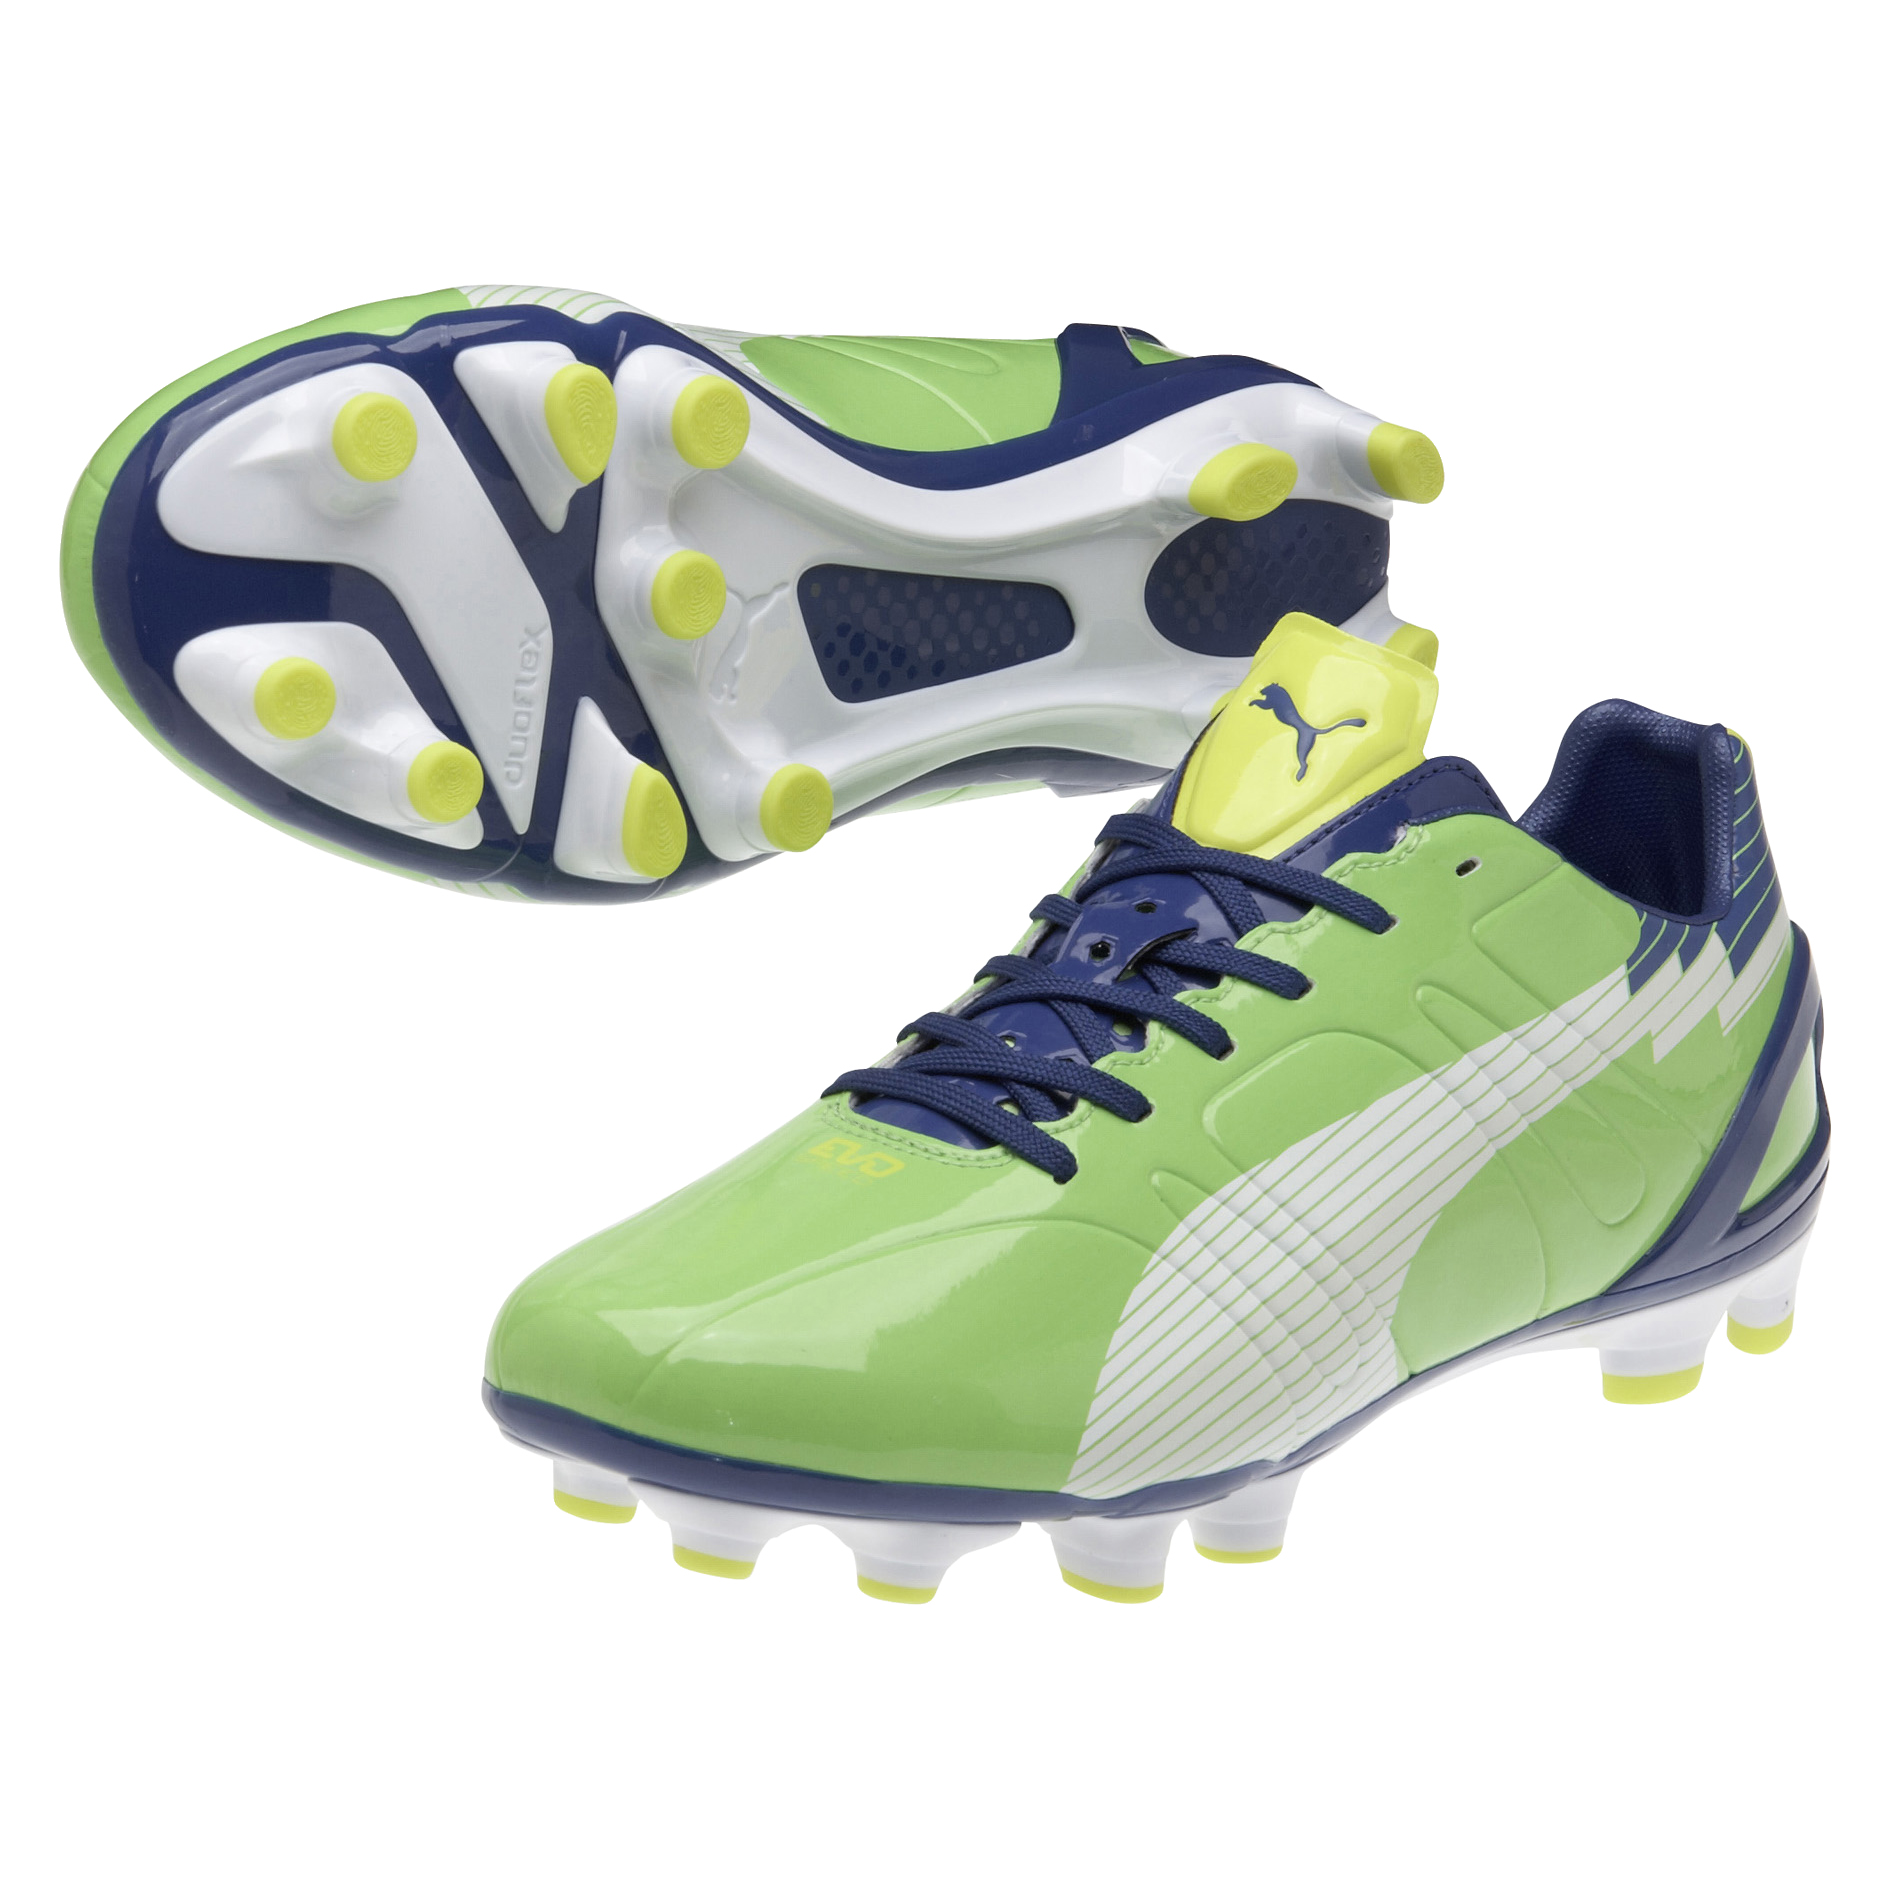 Puma evoSPEED 3 Firm Ground Football Boots - Jasmin Green/Monaco Blue/Fluo Yellow